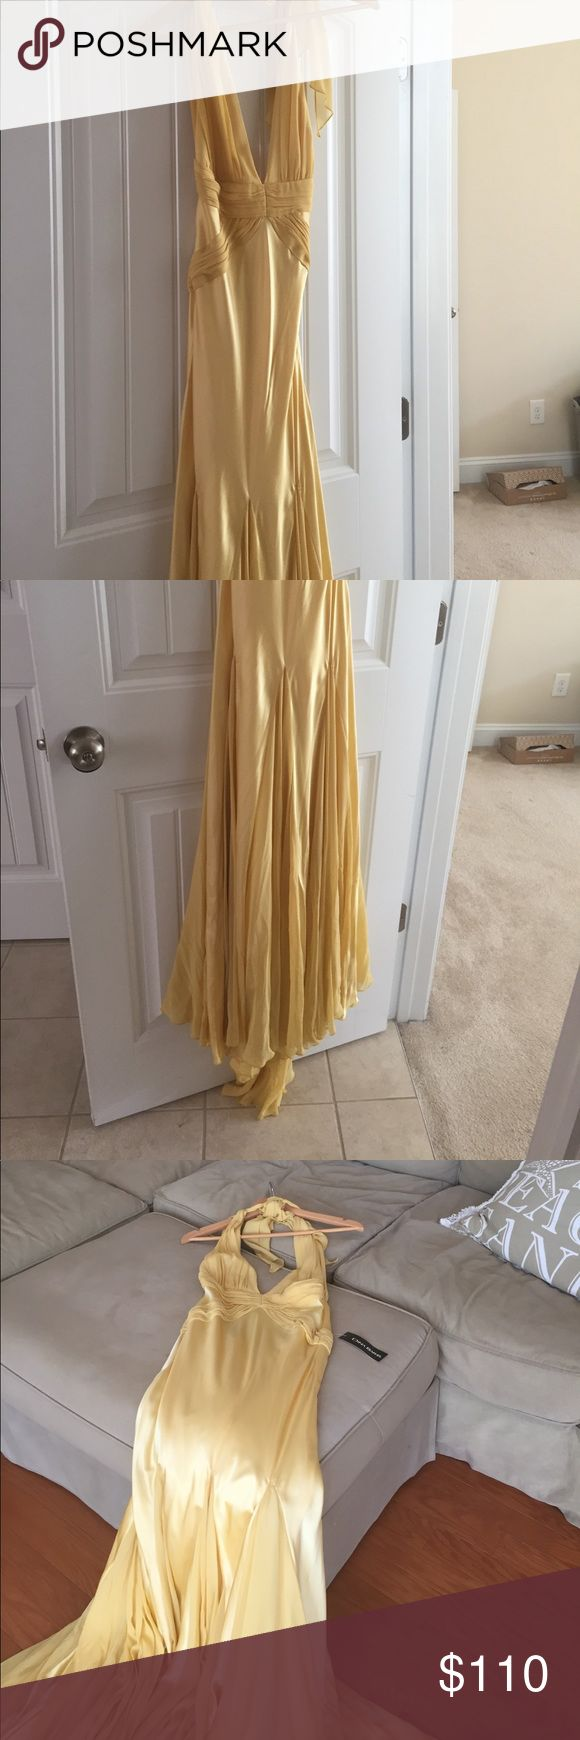 Prom / formal elegant silk gown Canary yellow silk formal gown perfect for prom, wedding, or pageant affair. Train gracefully flows as you walk like a princess! Brand new with tags never worn. Needs a new home where it can shine bright like a diamond!  ⭐️🌟☀️💎💎💎 Dresses Backless